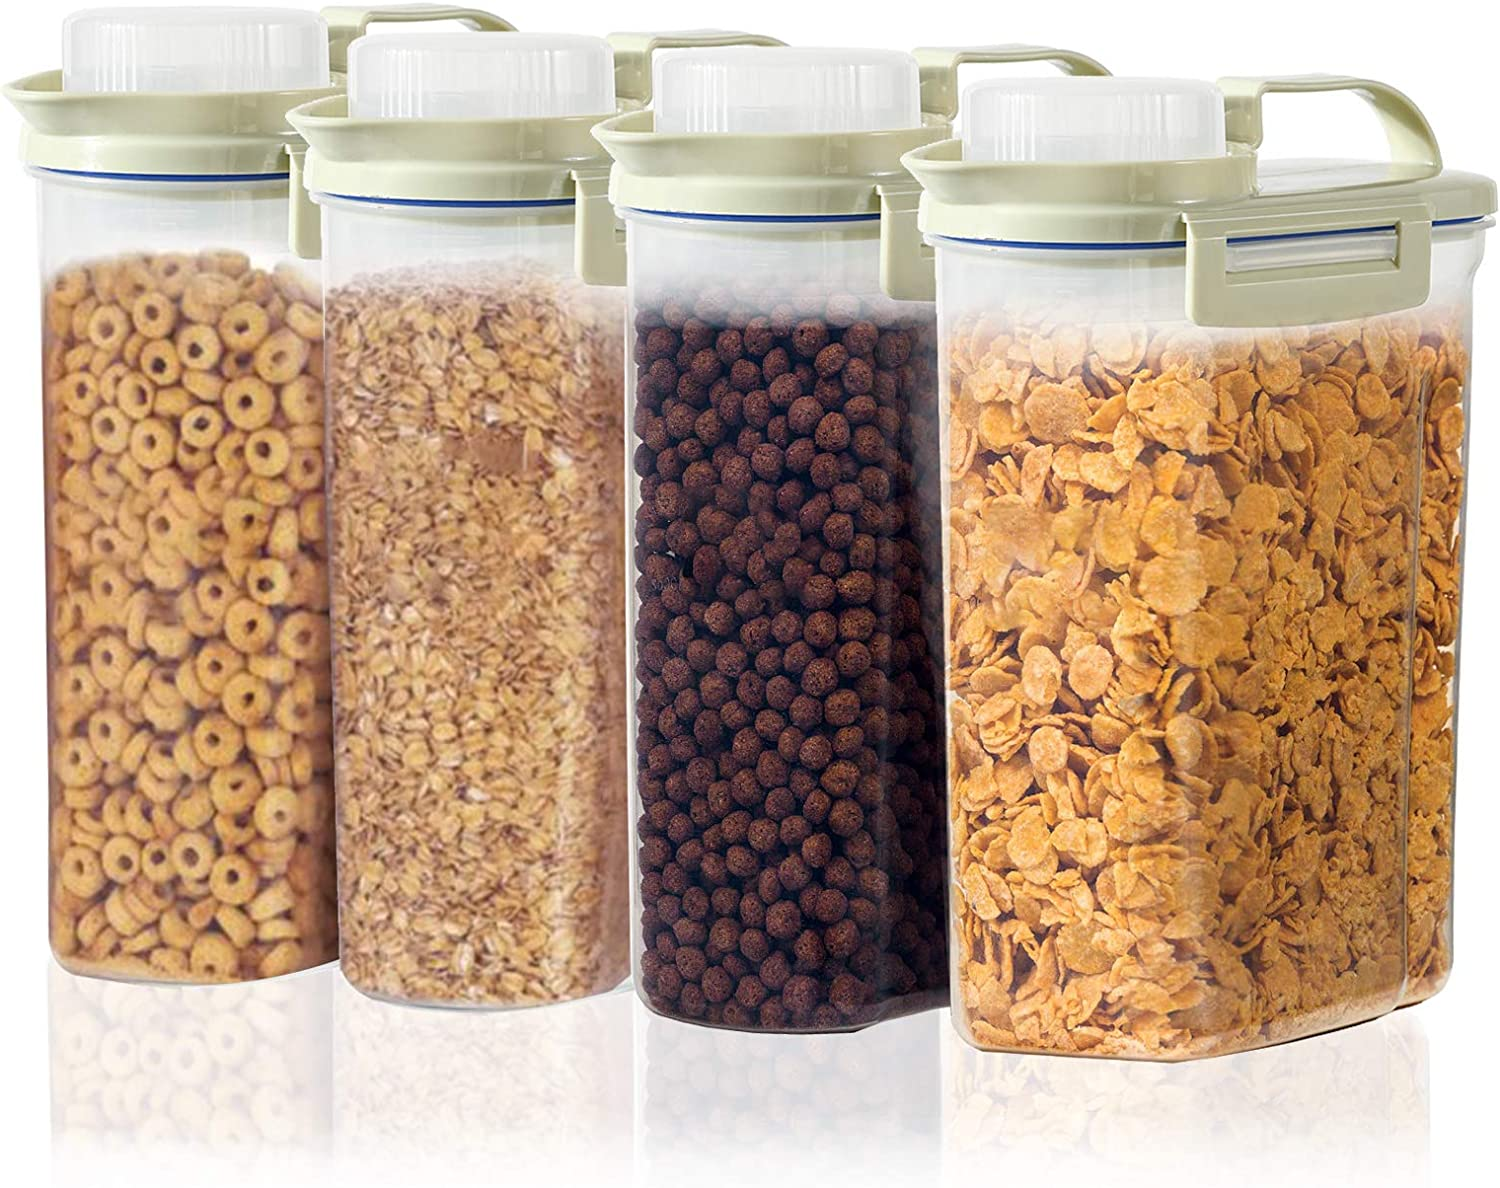 Cereal Container, BPA Free Plastic Large Dry Food Canisters for Kitchen Pantry Organization and Storage, 2.5L Food Storage Containers Set of 4